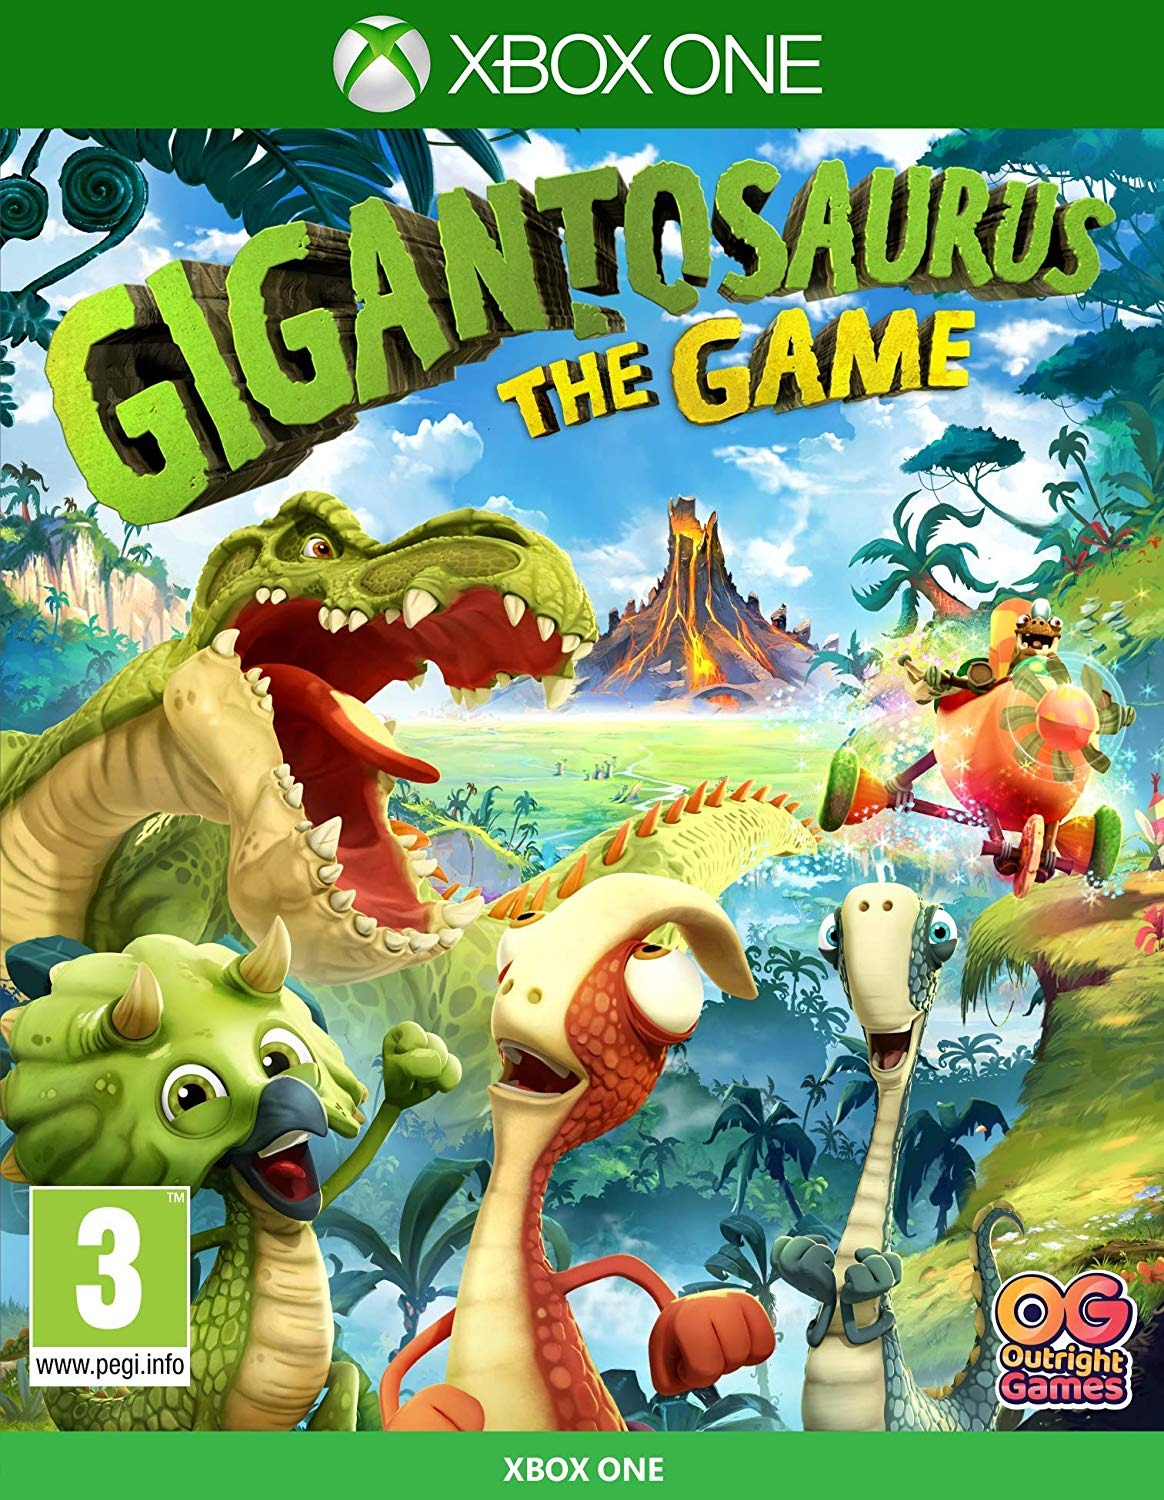 Gigantosaurus The Game (XONE)